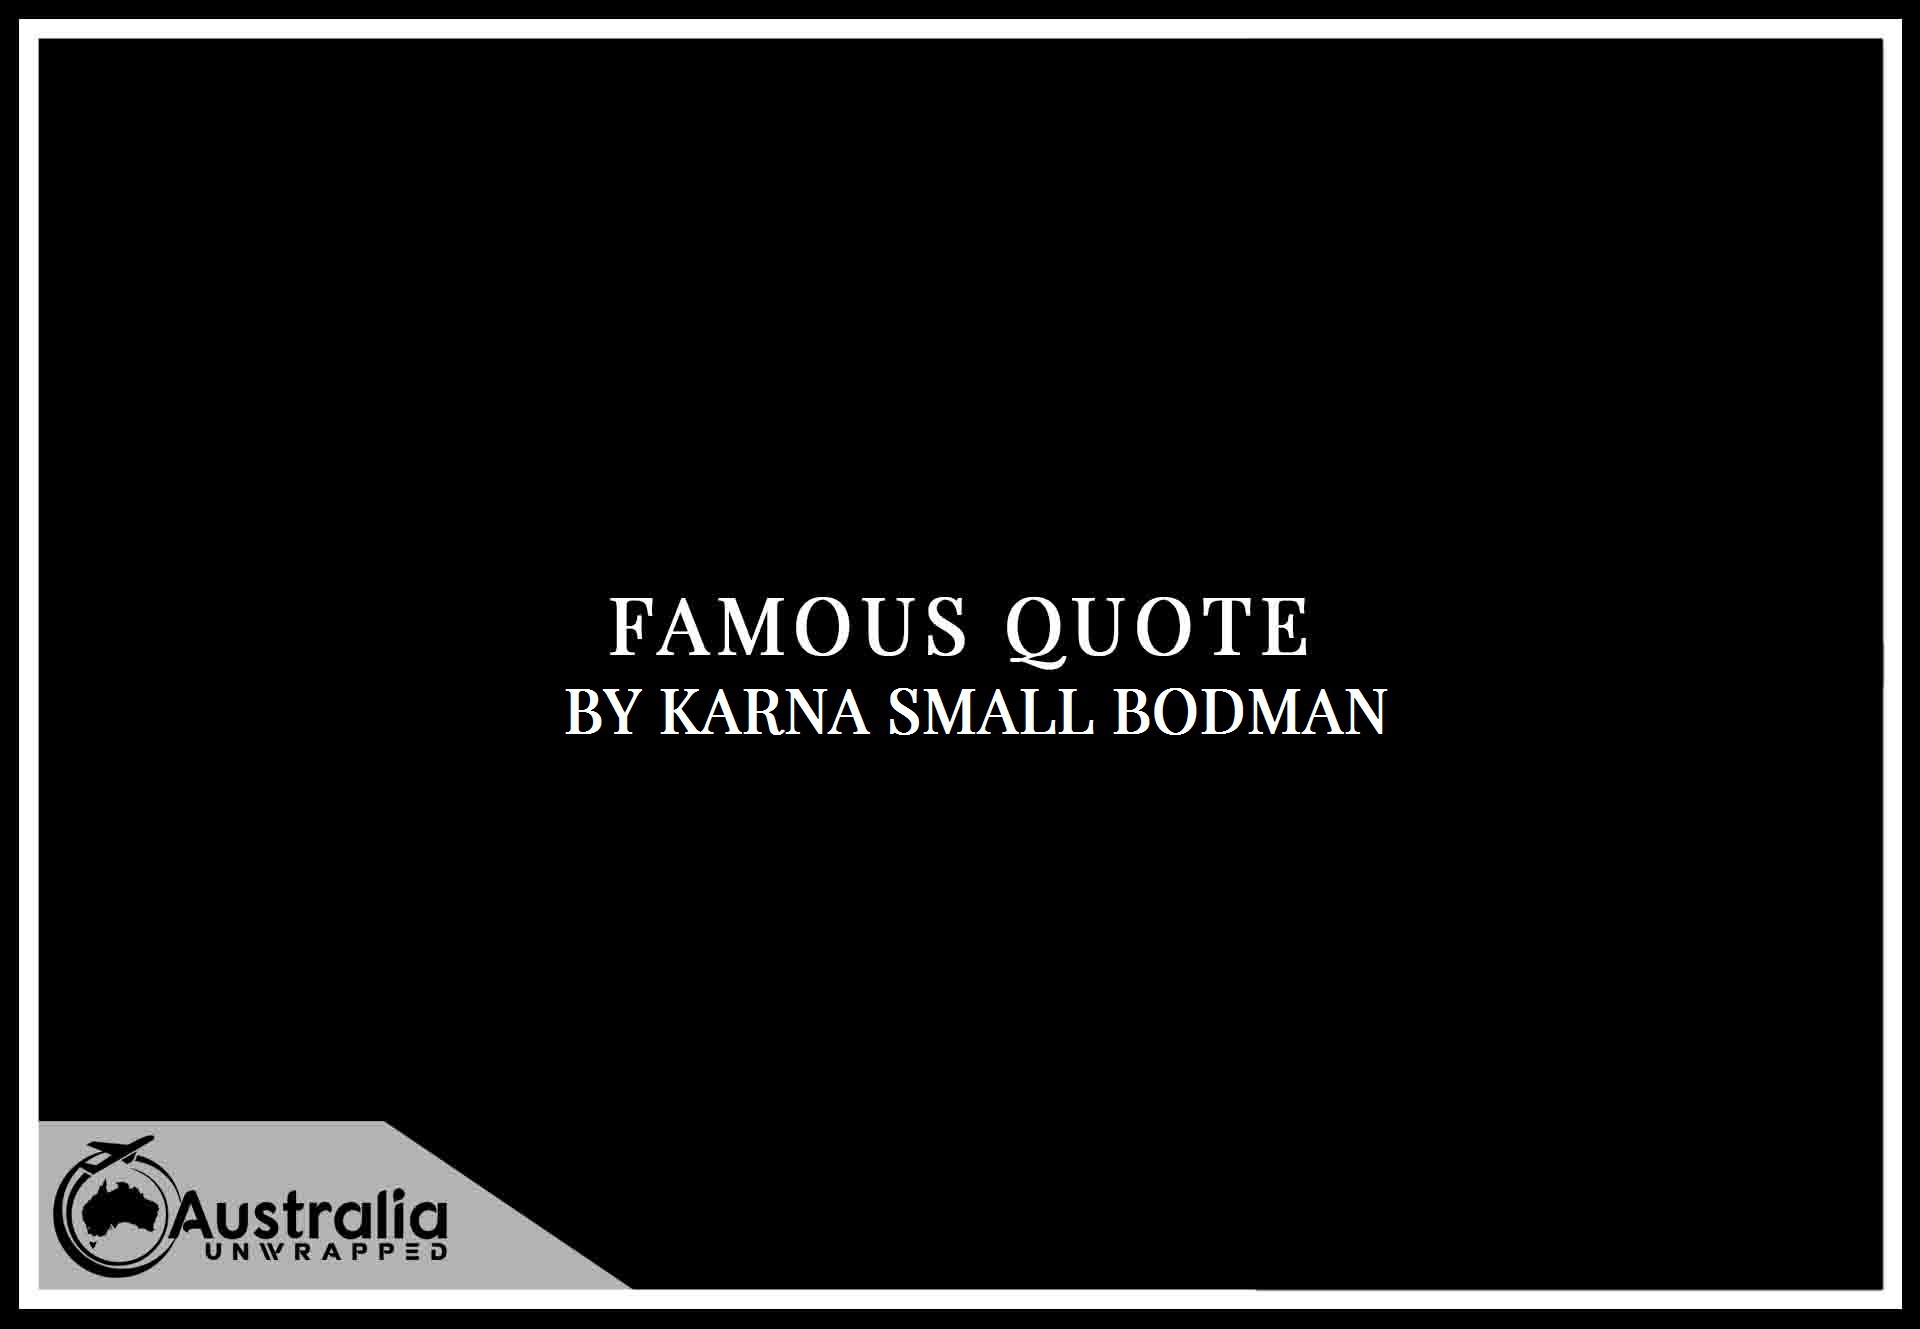 Karna Small Bodman's Top 1 Popular and Famous Quotes